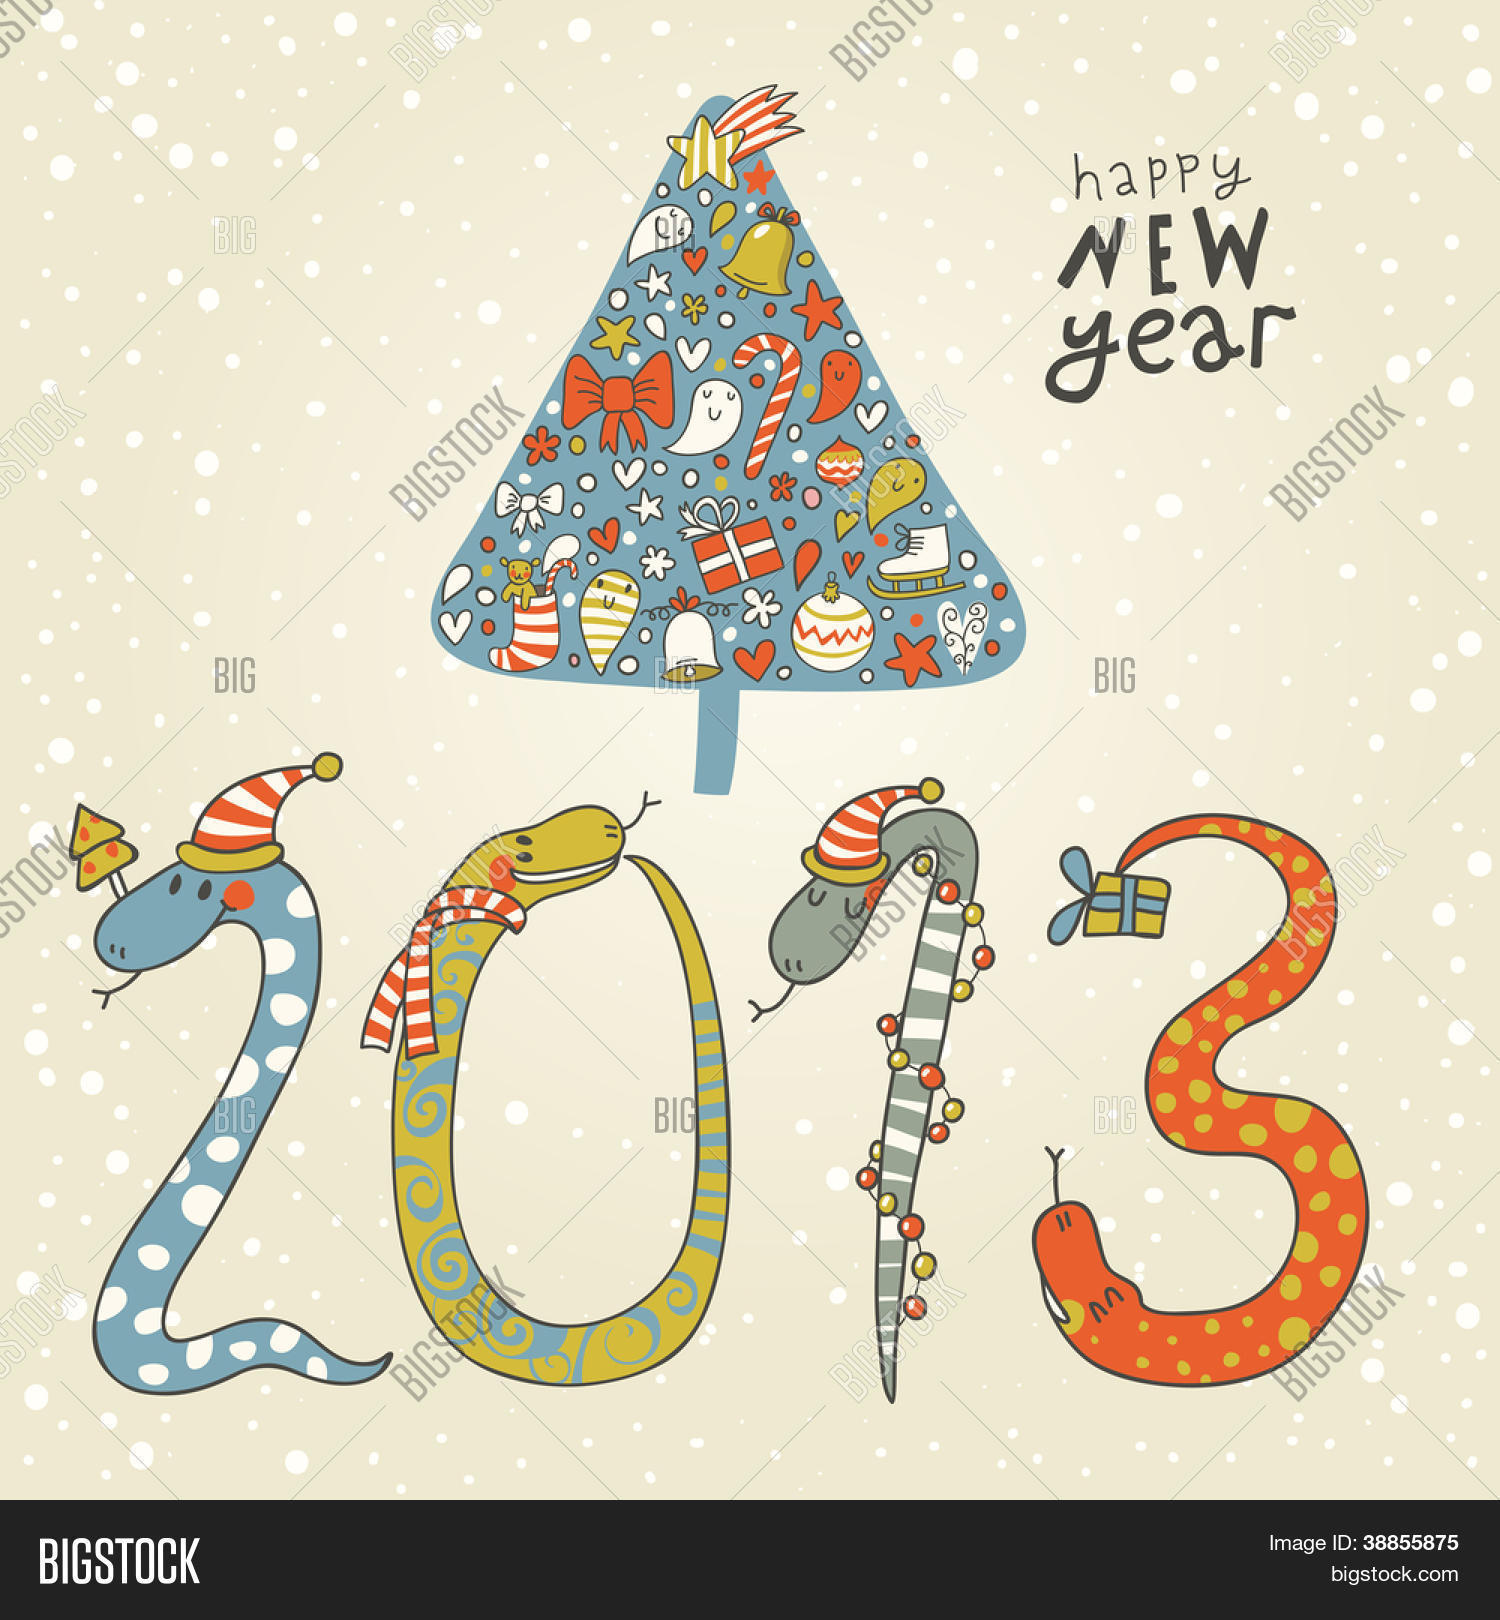 2013 year of the snake cute new year background with a snake concept